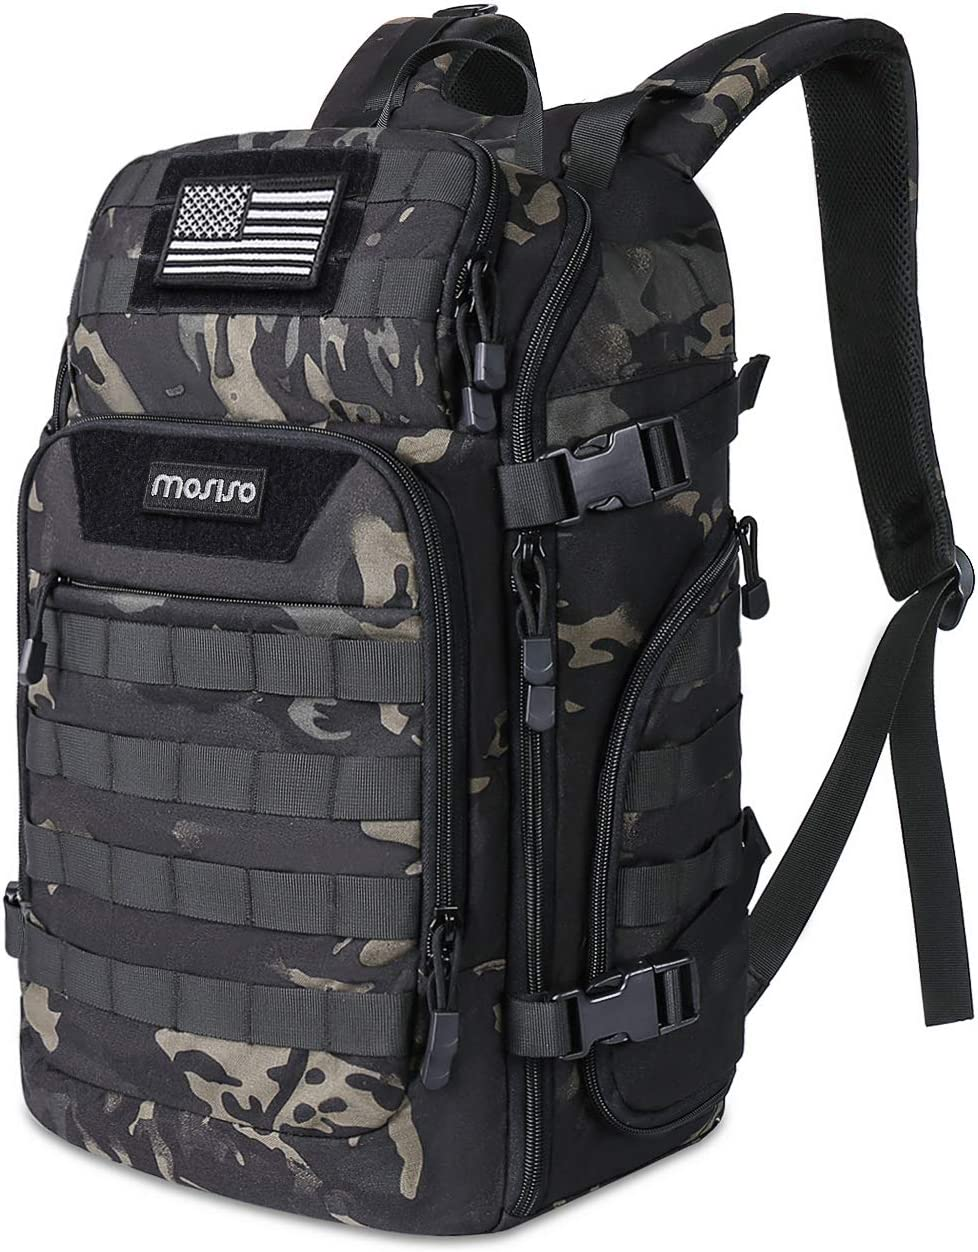 Fresno Mall MOSISO 30L Tactical Backpack Military Mol Assault 3 New popularity Daypack Day